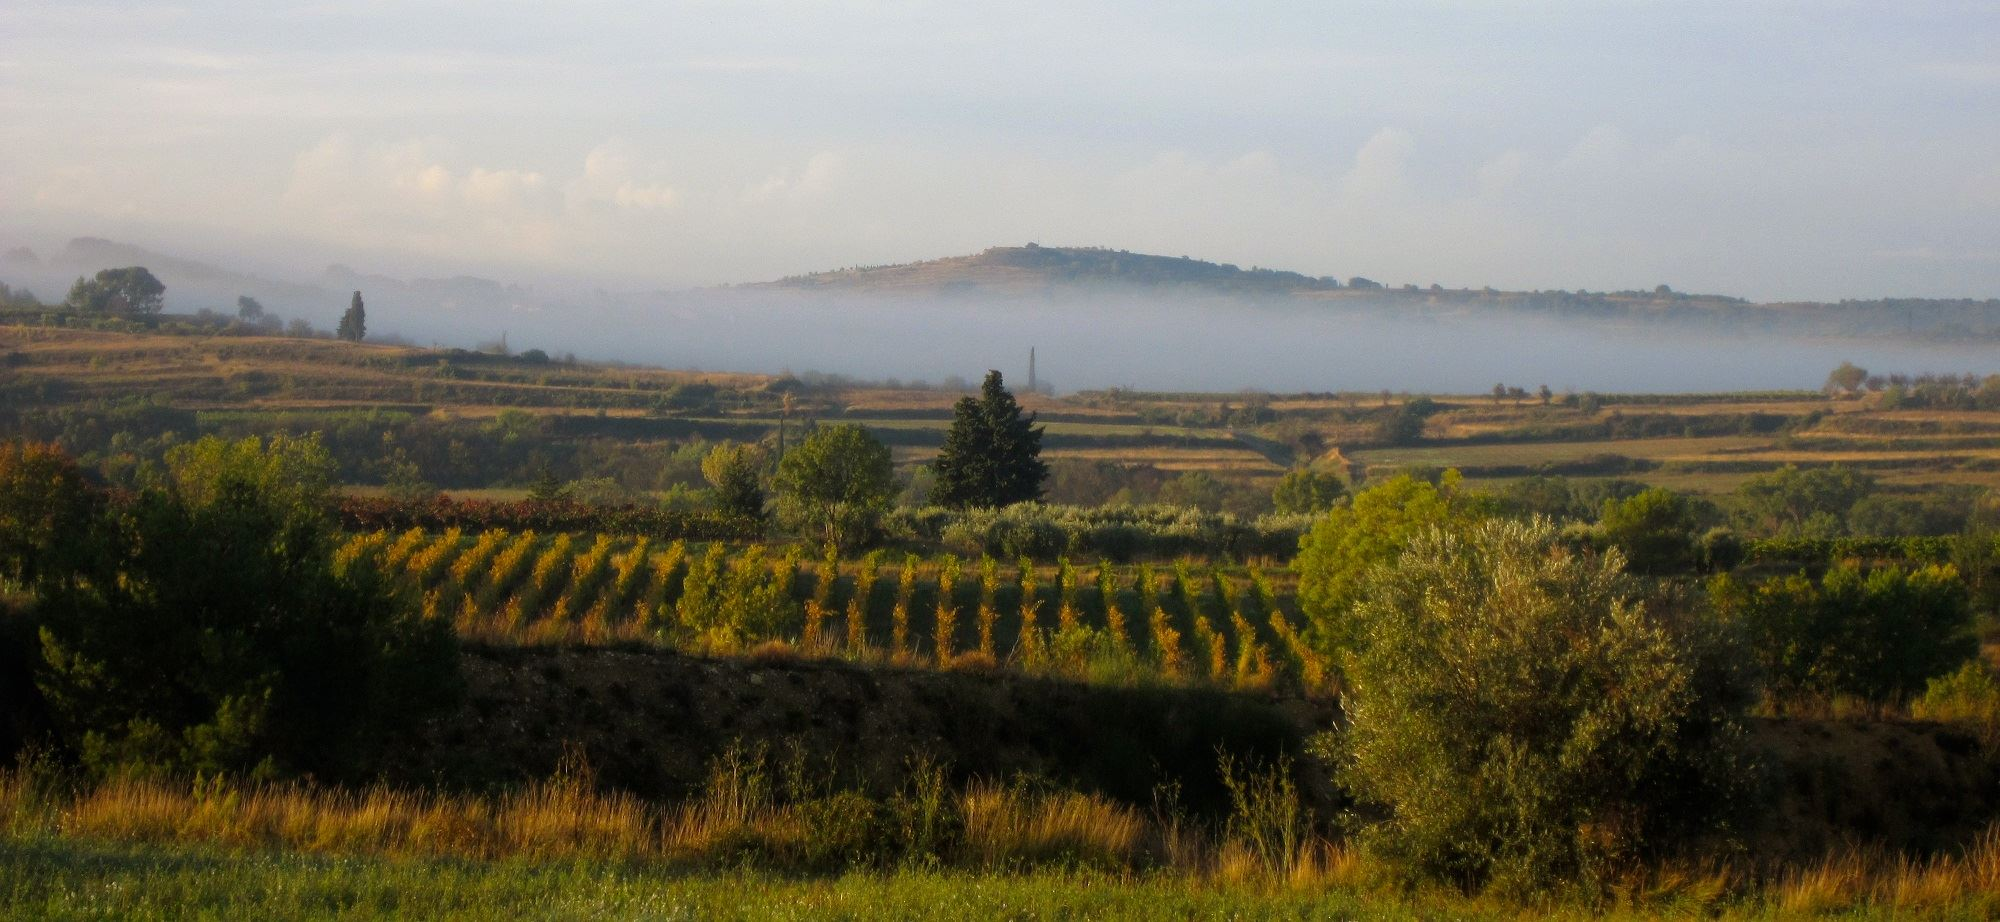 Vineyards and olive trees, discovering the nectar of the Languedoc region